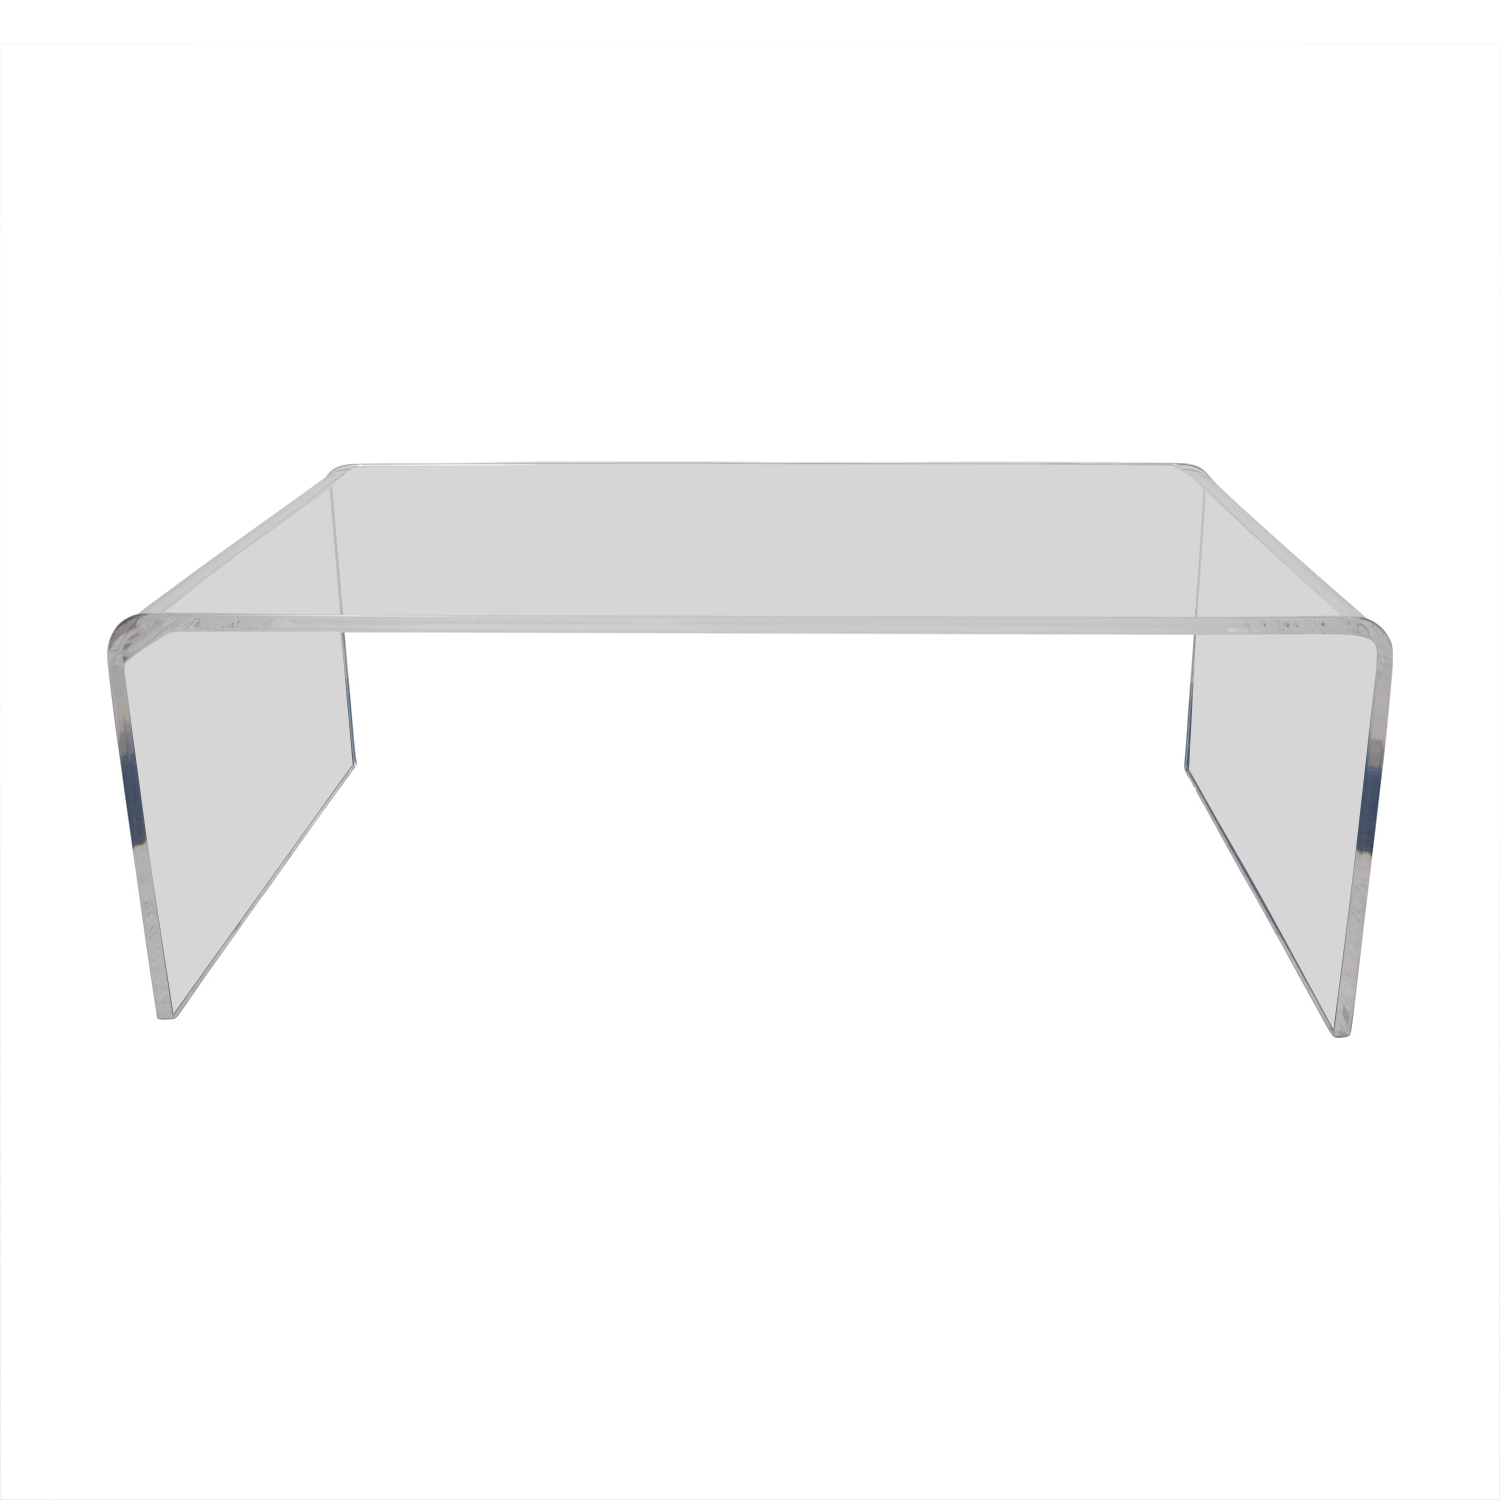 [%90% Off – West Elm West Elm Silver Coffee Table / Tables Intended For Recent Peekaboo Acrylic Tall Coffee Tables|peekaboo Acrylic Tall Coffee Tables With Regard To Well Known 90% Off – West Elm West Elm Silver Coffee Table / Tables|favorite Peekaboo Acrylic Tall Coffee Tables With 90% Off – West Elm West Elm Silver Coffee Table / Tables|current 90% Off – West Elm West Elm Silver Coffee Table / Tables With Peekaboo Acrylic Tall Coffee Tables%] (View 2 of 20)